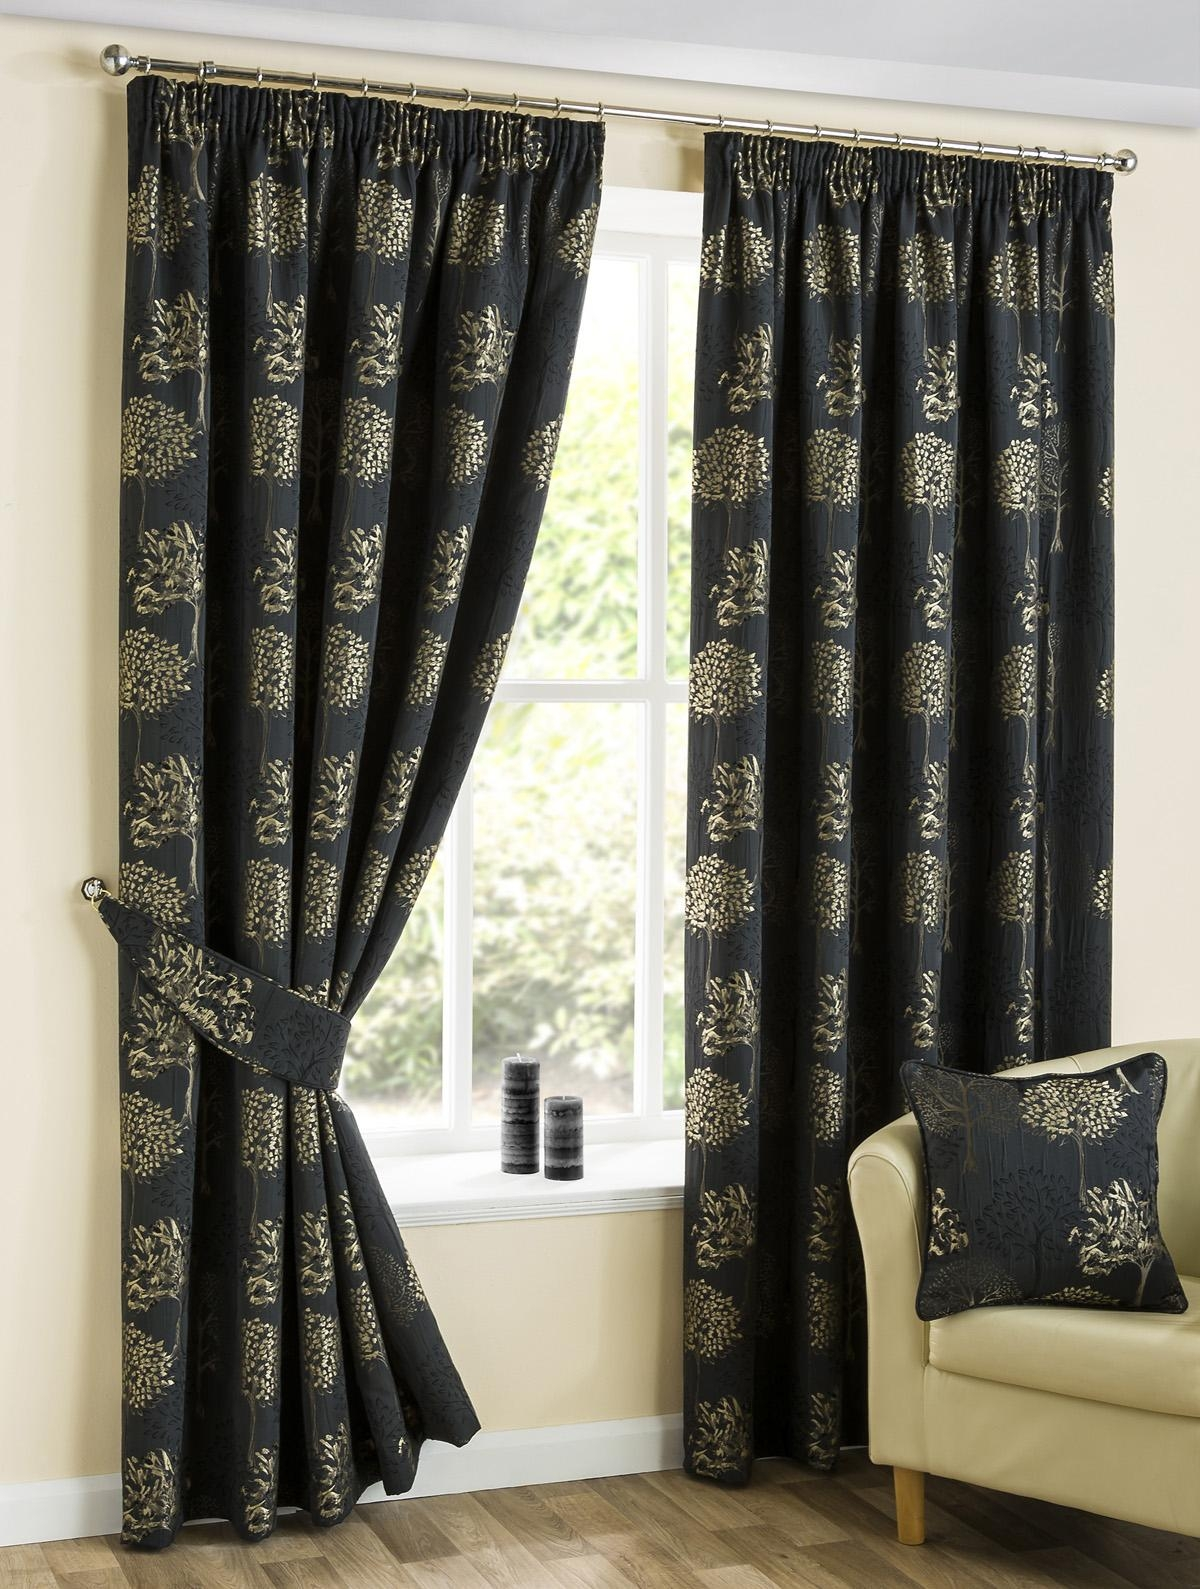 Thick Curtains Affordable Curtains Available Terrys Fabrics Intended For Heavy Lined Curtains (Image 10 of 15)